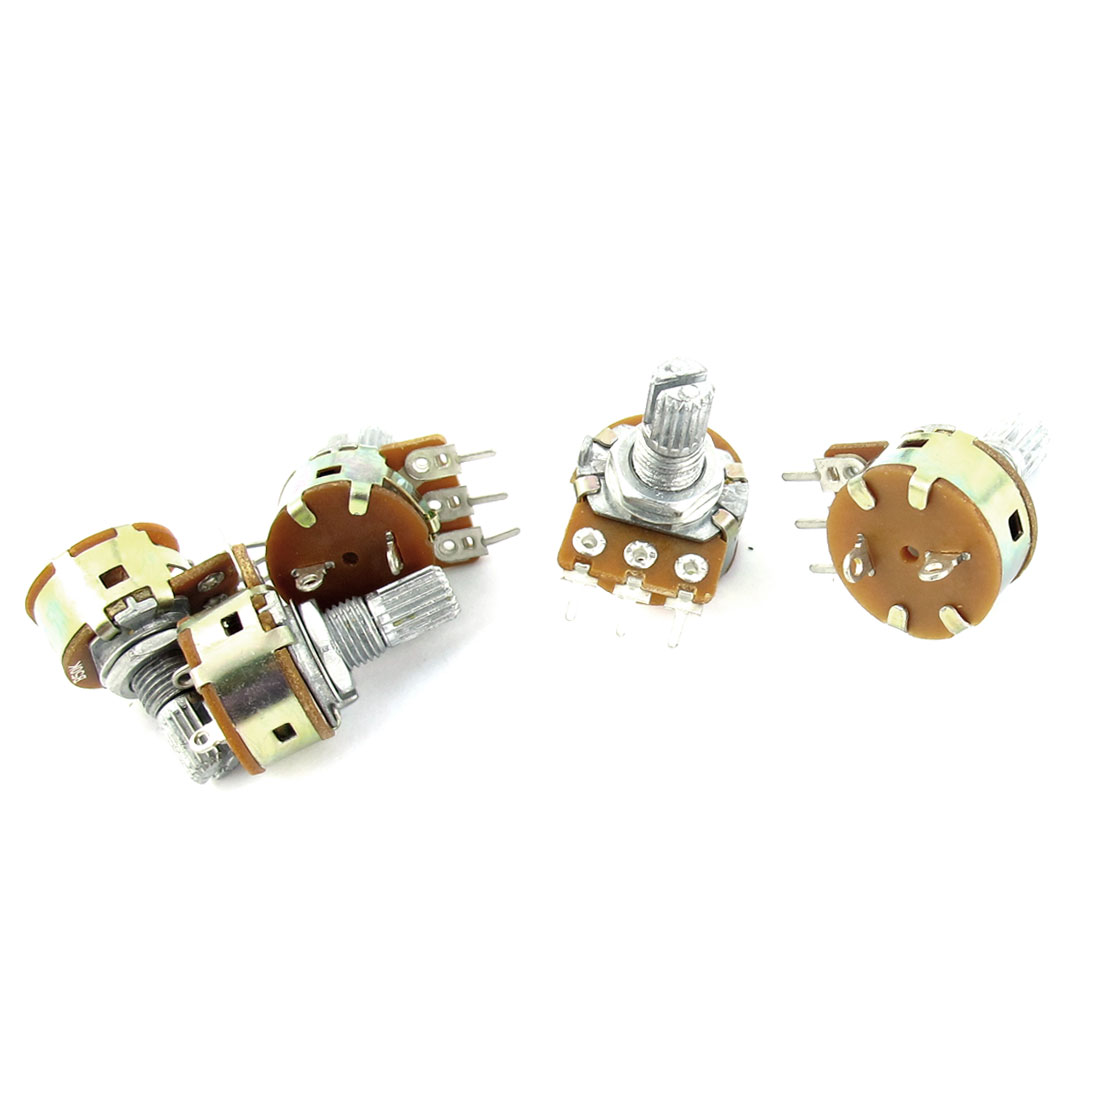 5Pcs B50K 50K Ohm 7mm Thread 6mm Knurled Shaft 3 Terminals Linear Single Turn Top Adjustable Rotary Taper Potentiometer